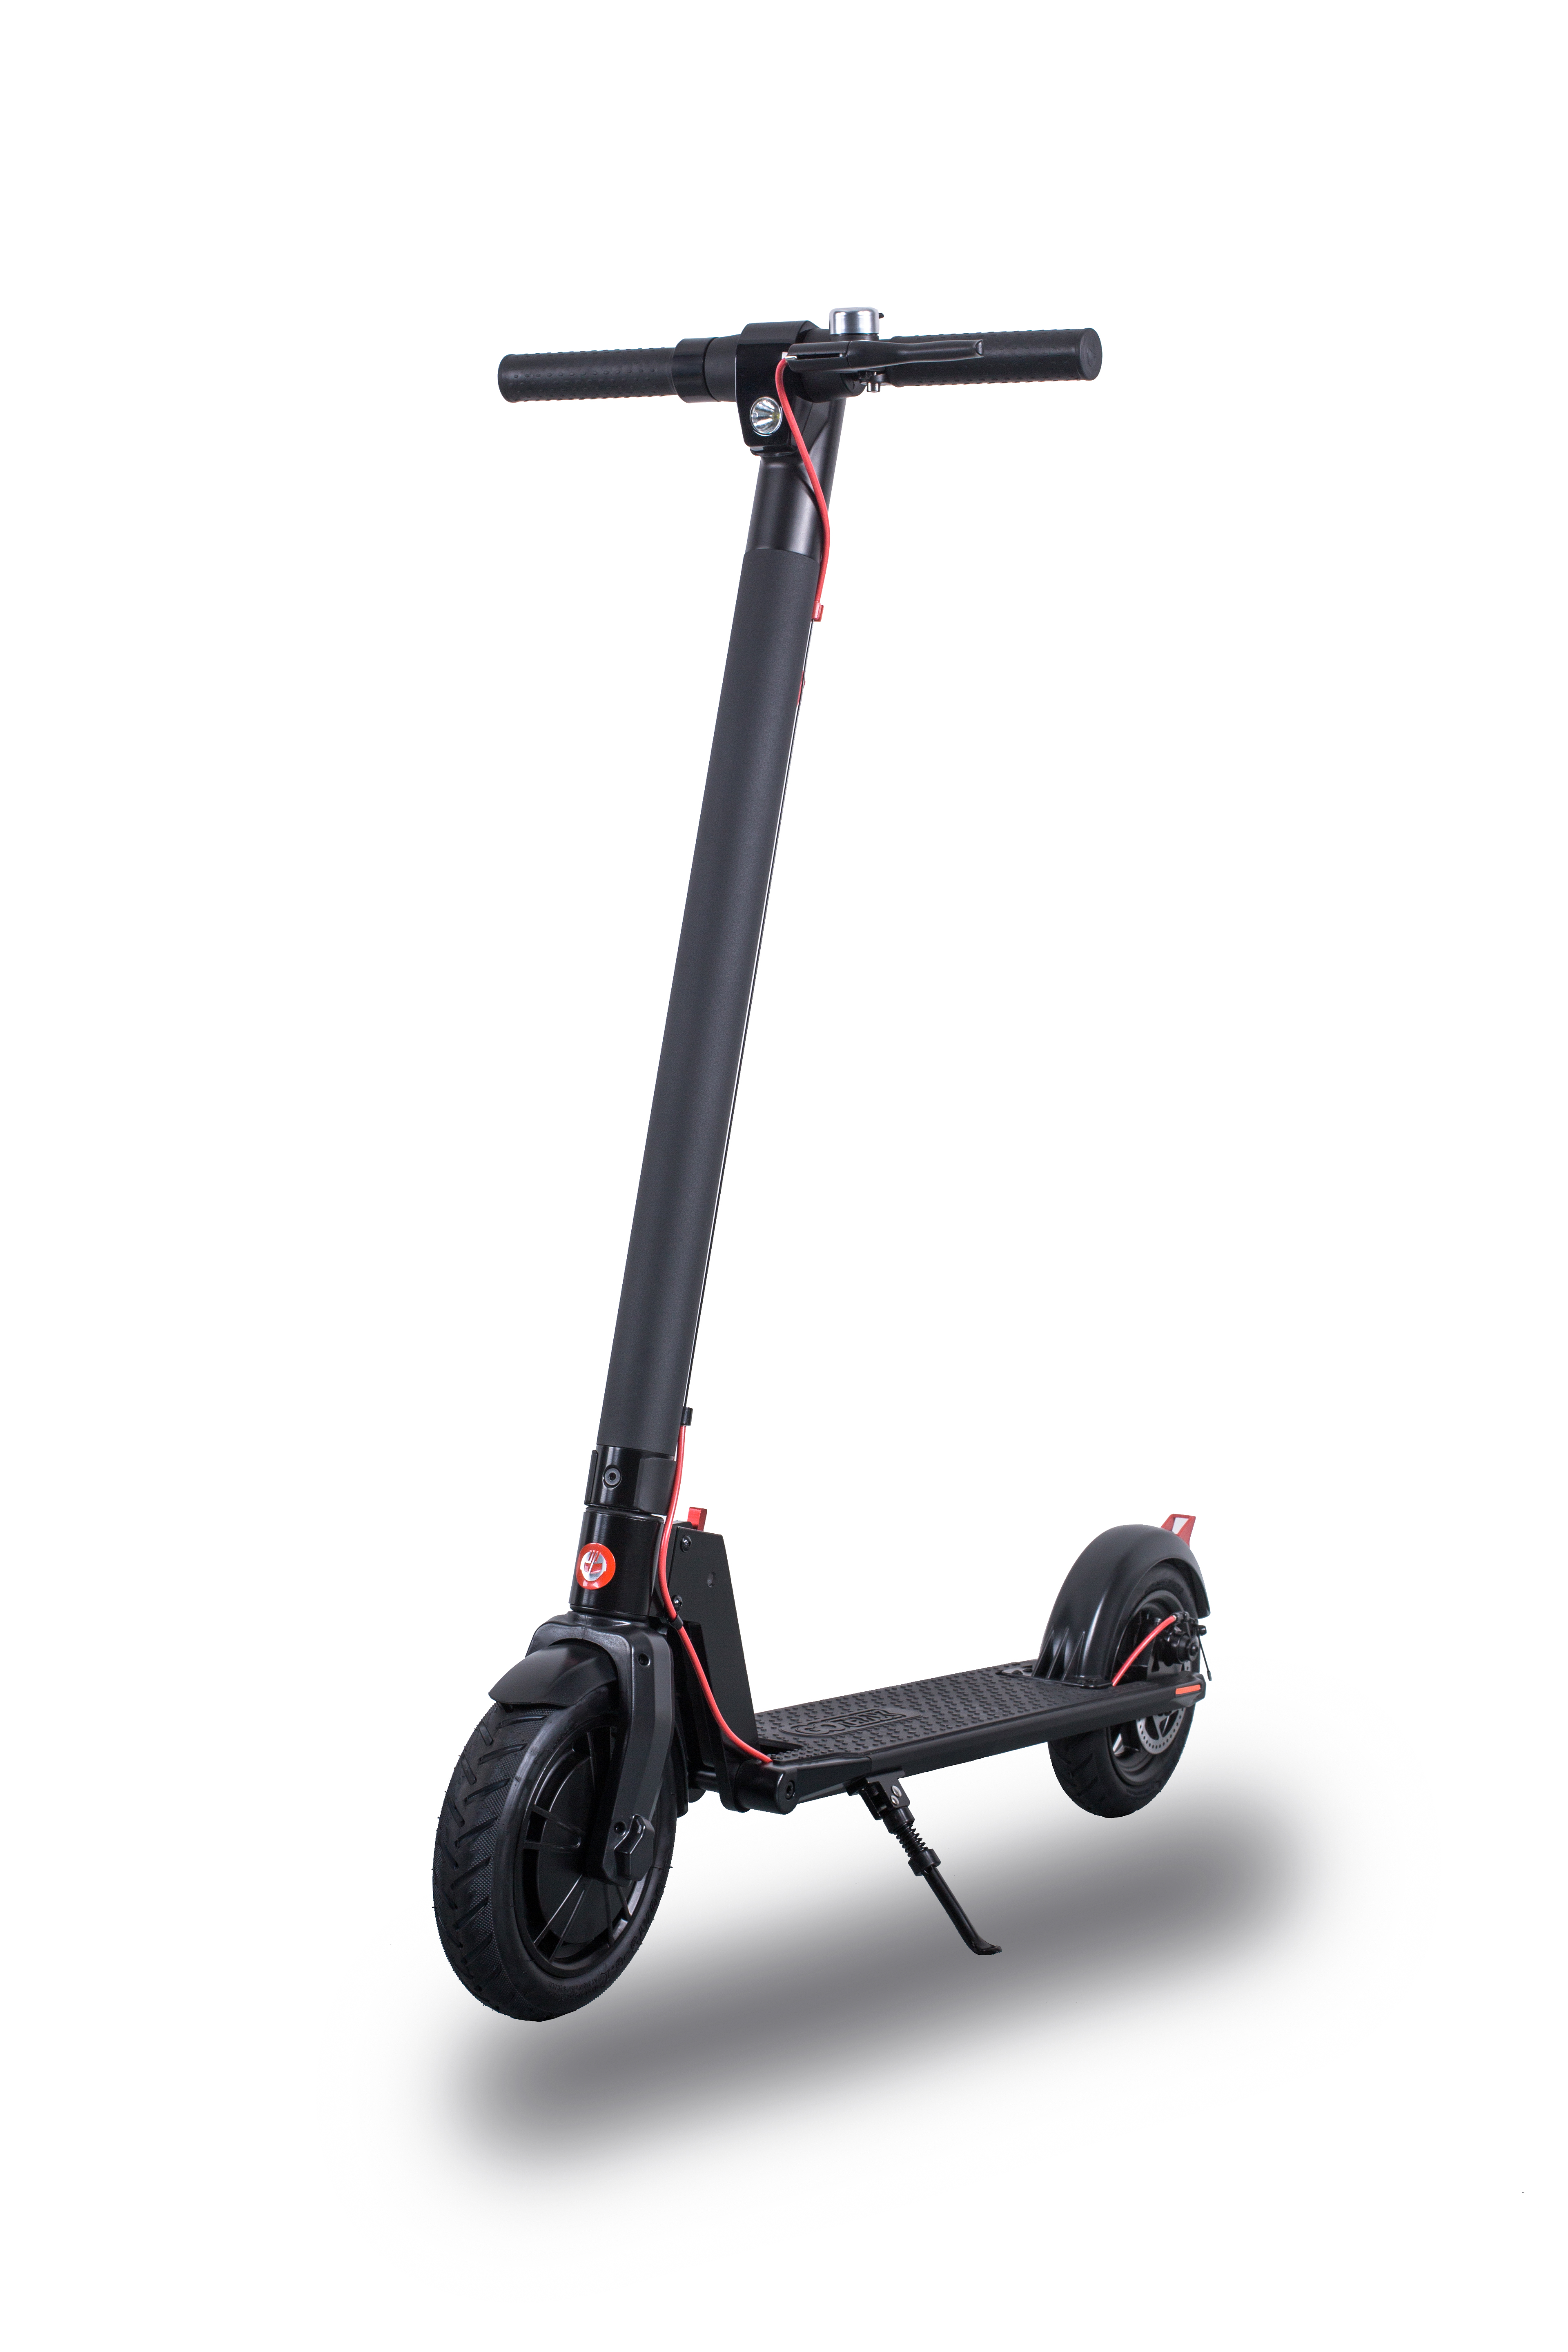 Best Scooters For Adults 2019 Commute In Style With These Rides